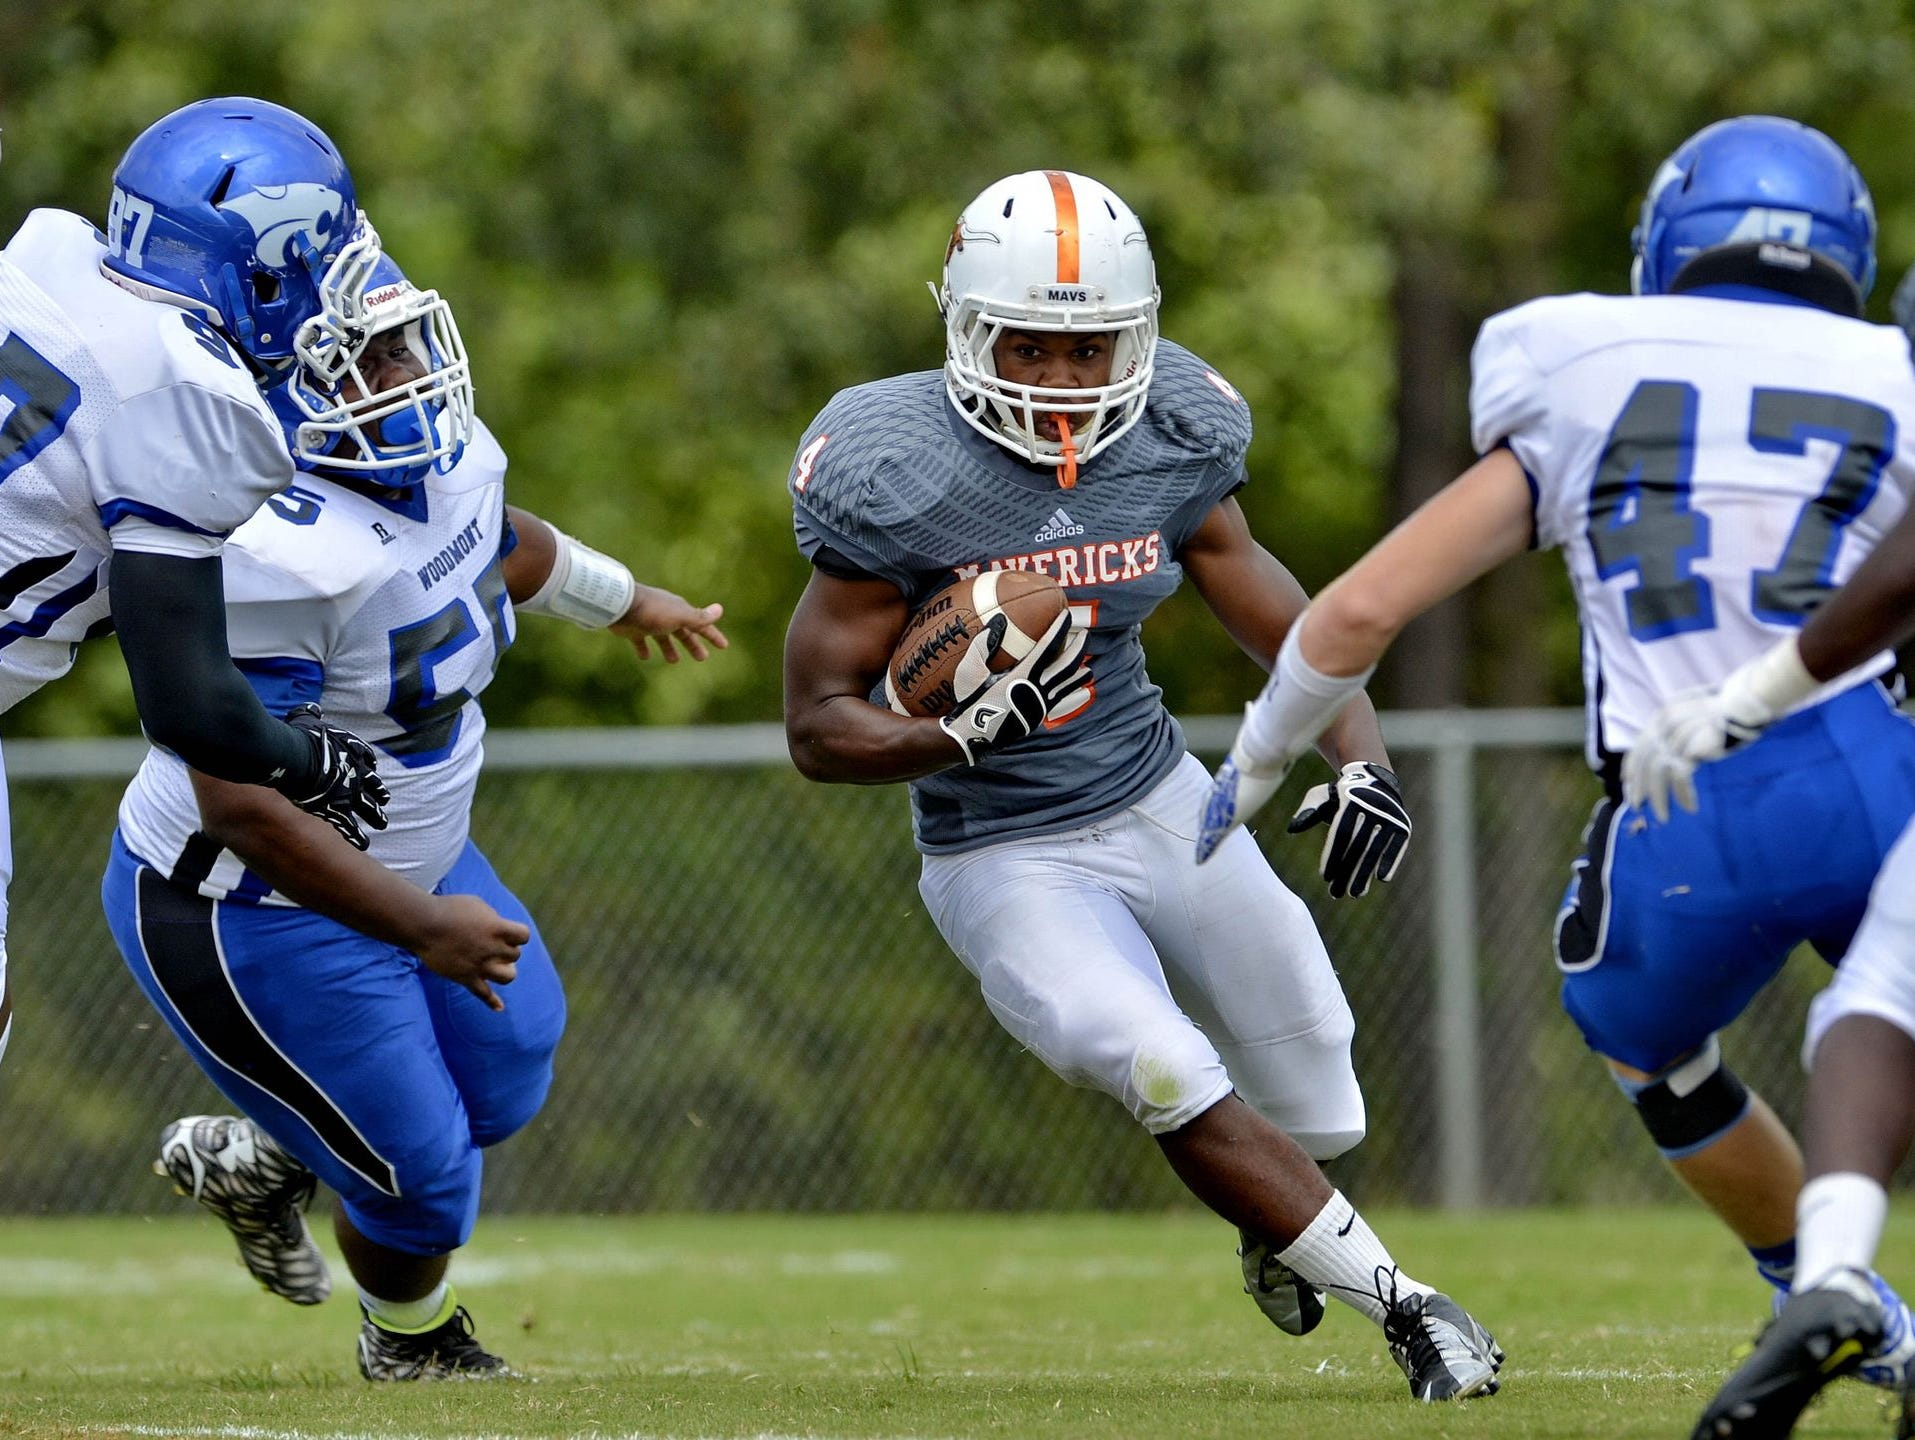 Junior runnning back Averius Blakely (4) and the Mauldin Mavericks will play on the road Friday night against No. 3 Spartanburg.